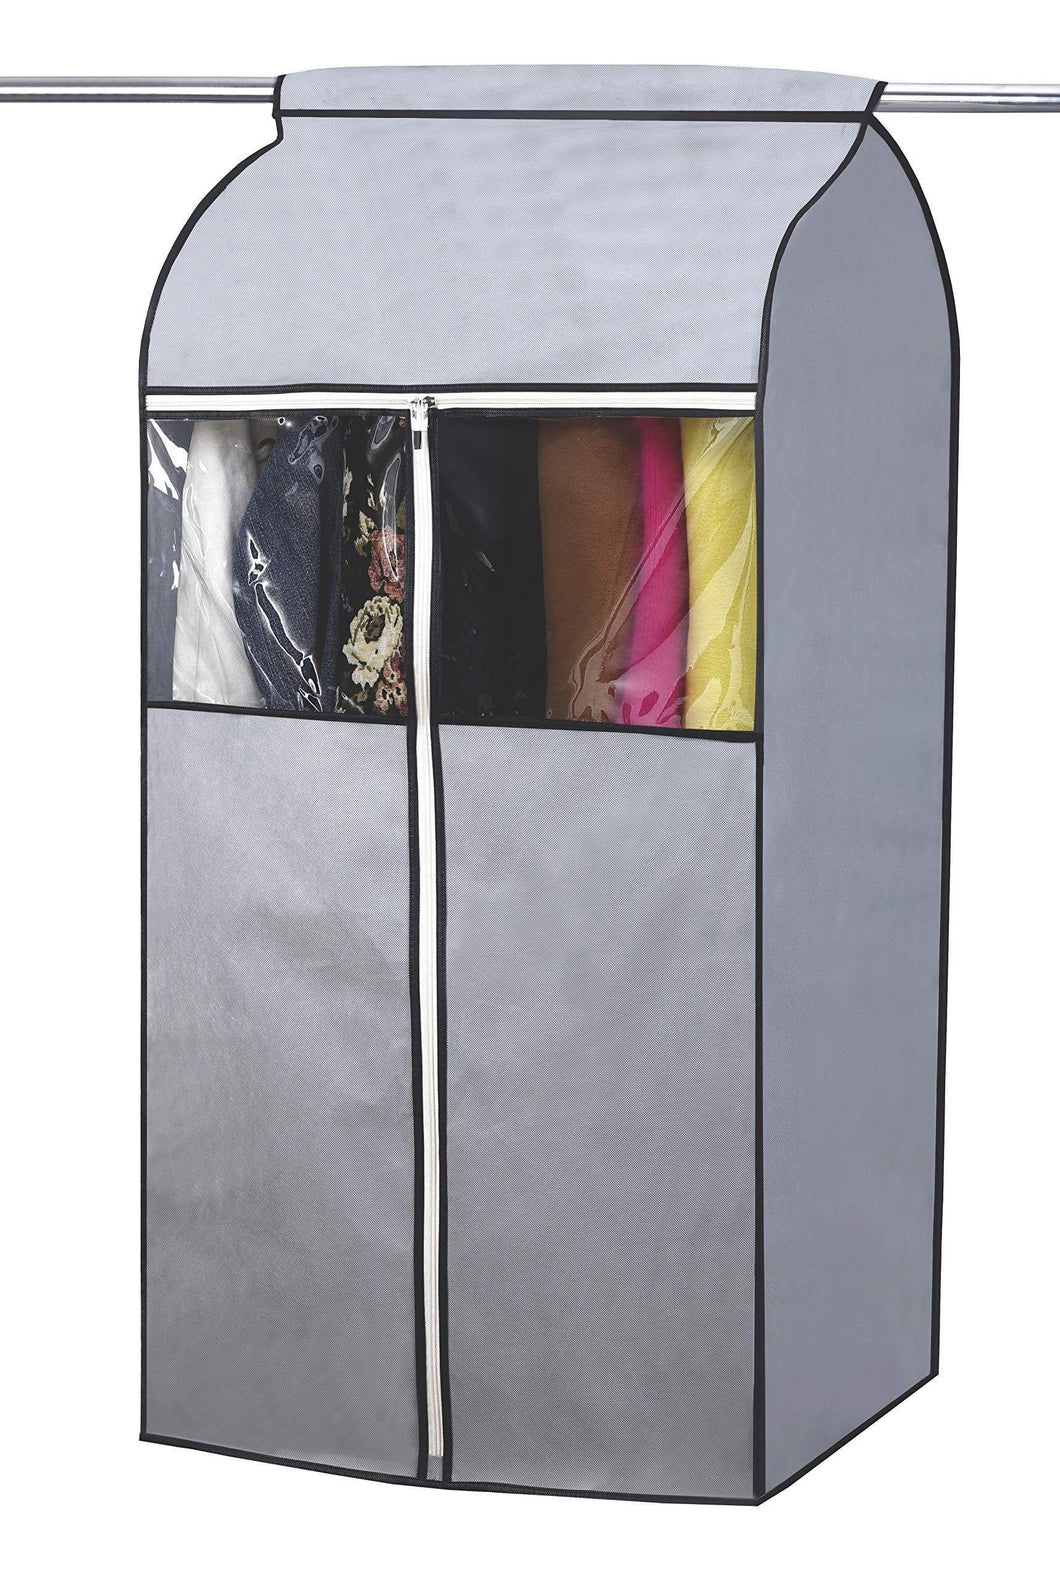 Budget friendly sleeping lamb garment bag organizer storage with clear pvc windows garment rack cover well sealed hanging closet cover for suits coats jackets grey